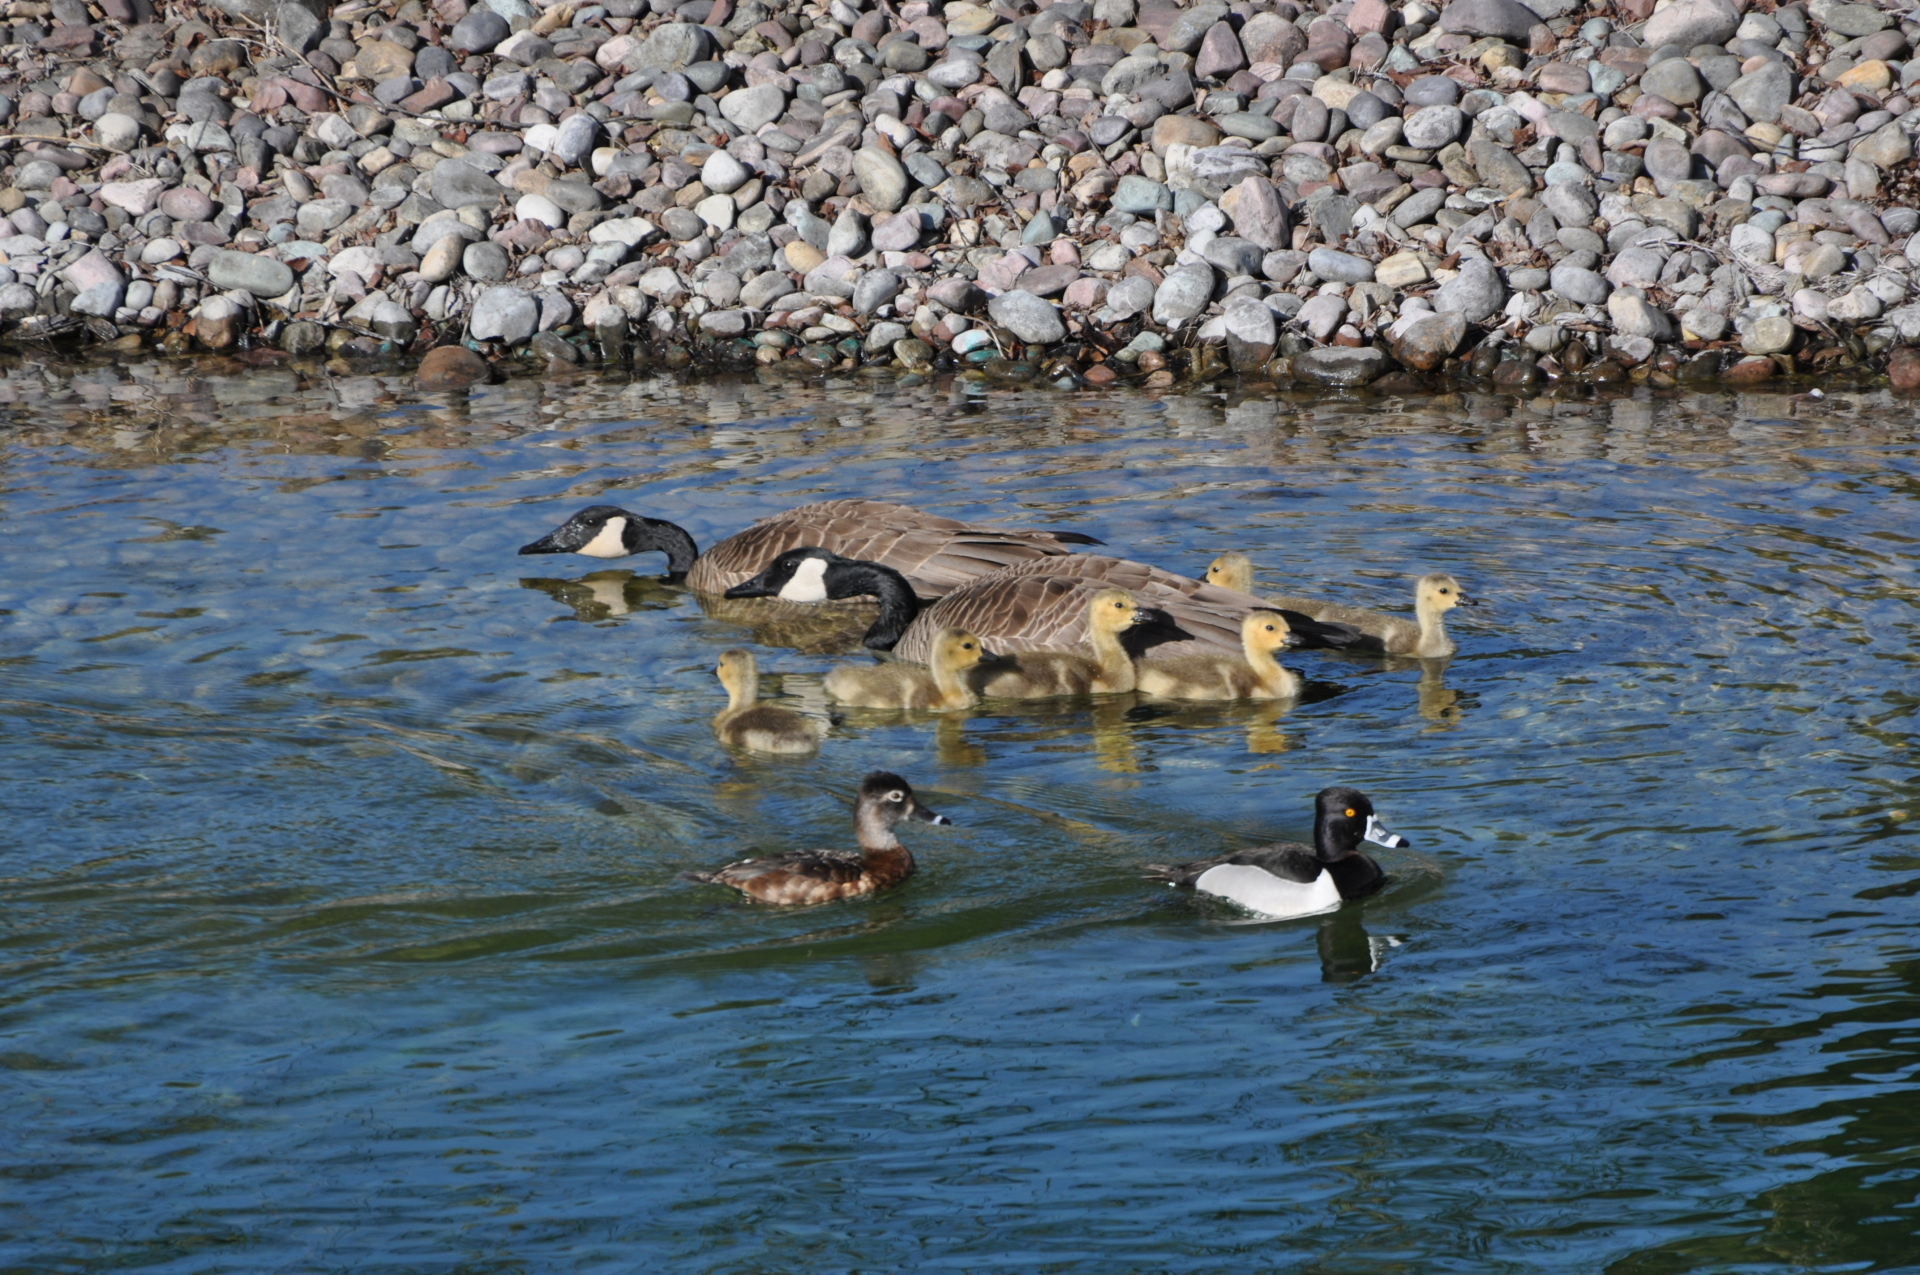 Ducks and Geese friendly gathering